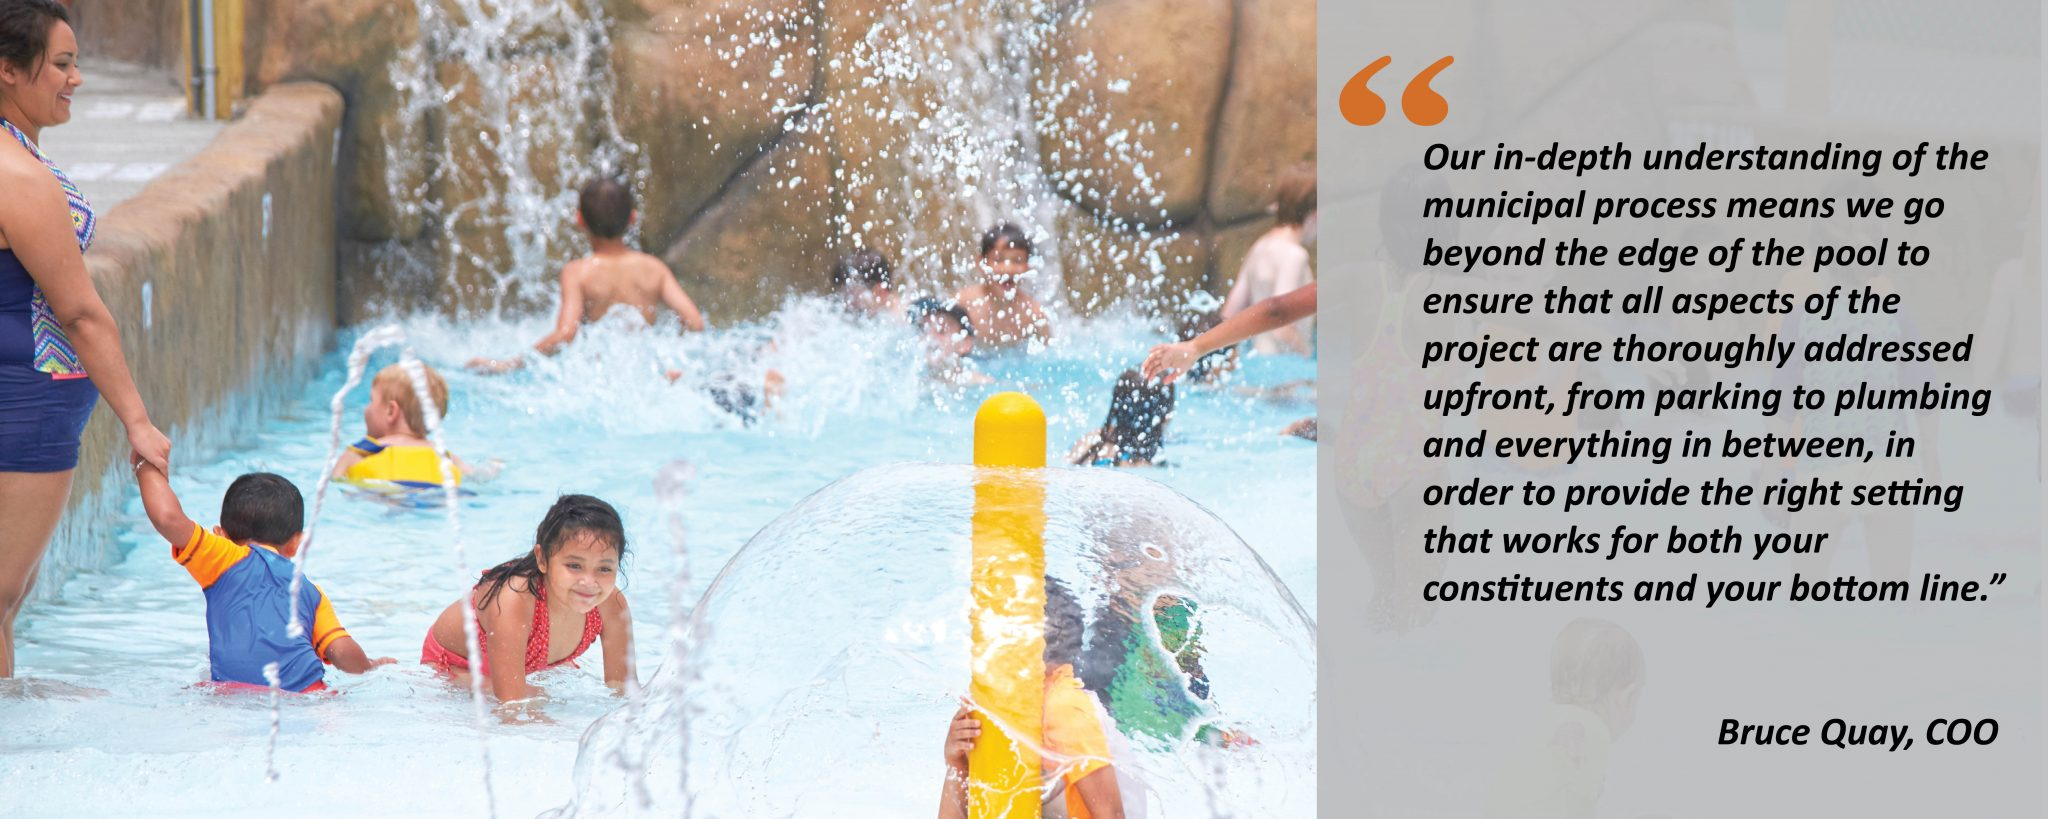 water park at municipality quote